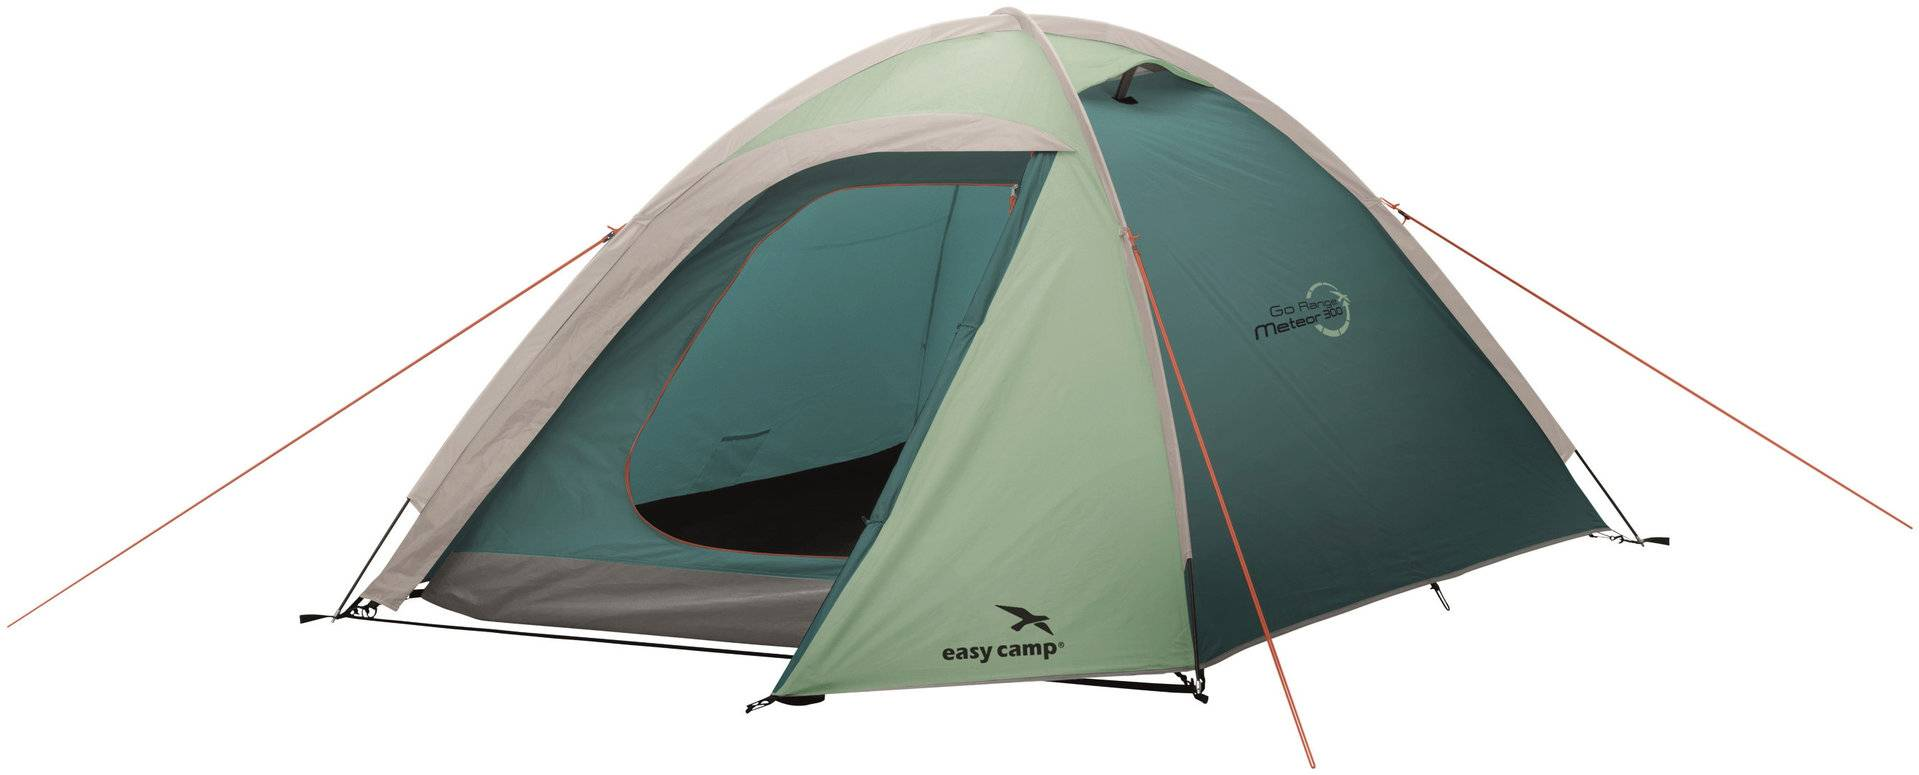 Easy Camp Meteor 300 tente Vert taille : unique taille